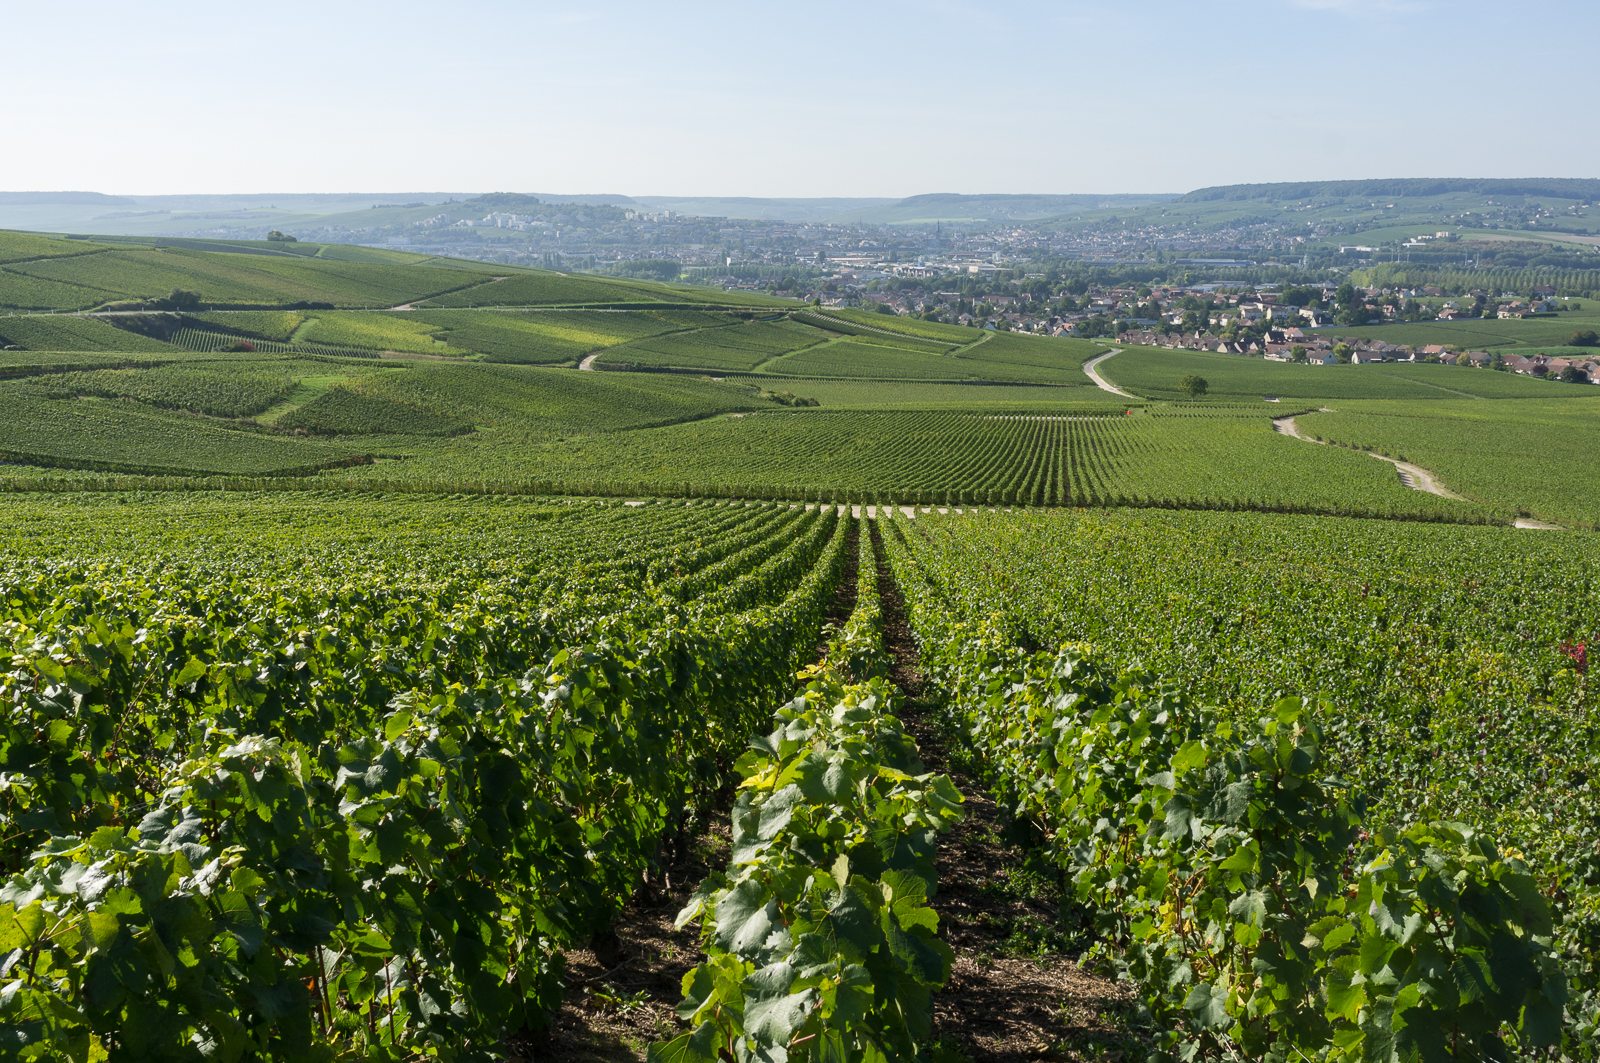 A view towards Epernay